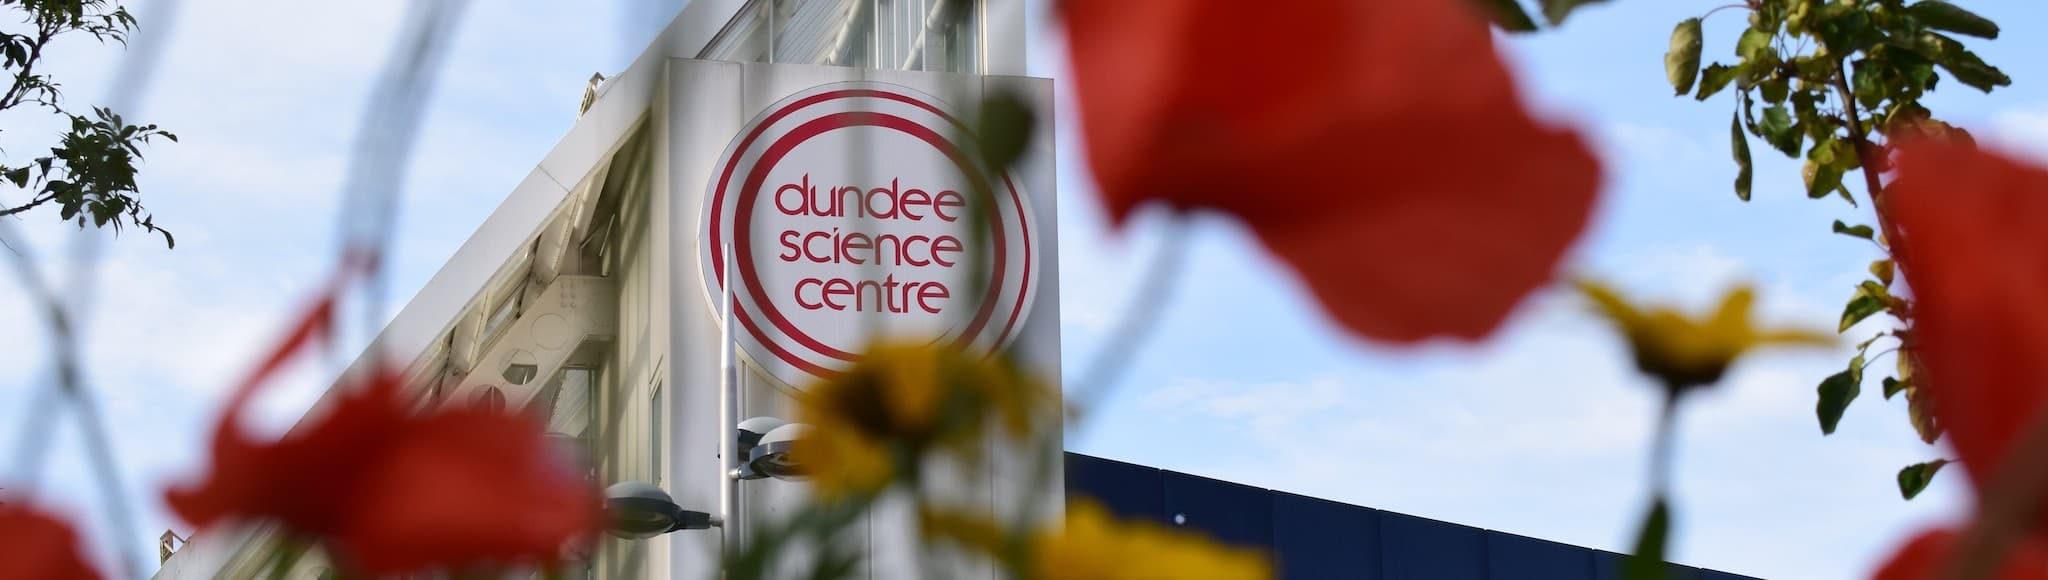 Dundee Science Centre Photograph